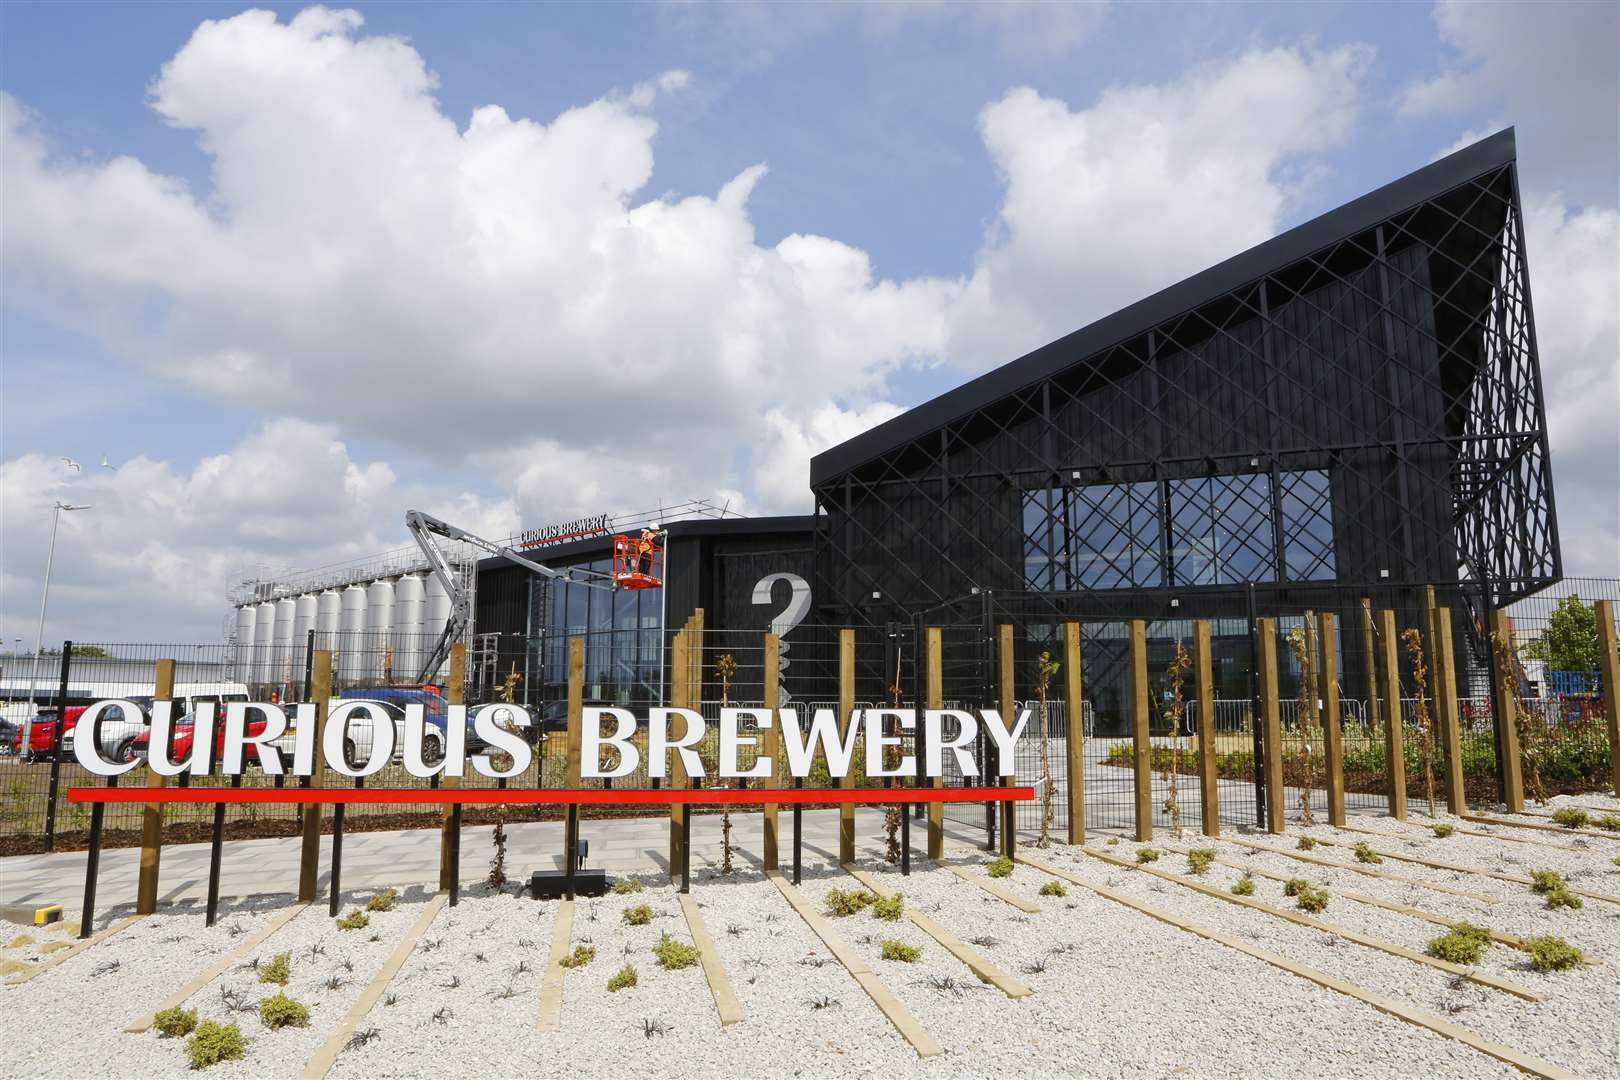 The new Curious brewery in Ashford Picture: Andy Jones